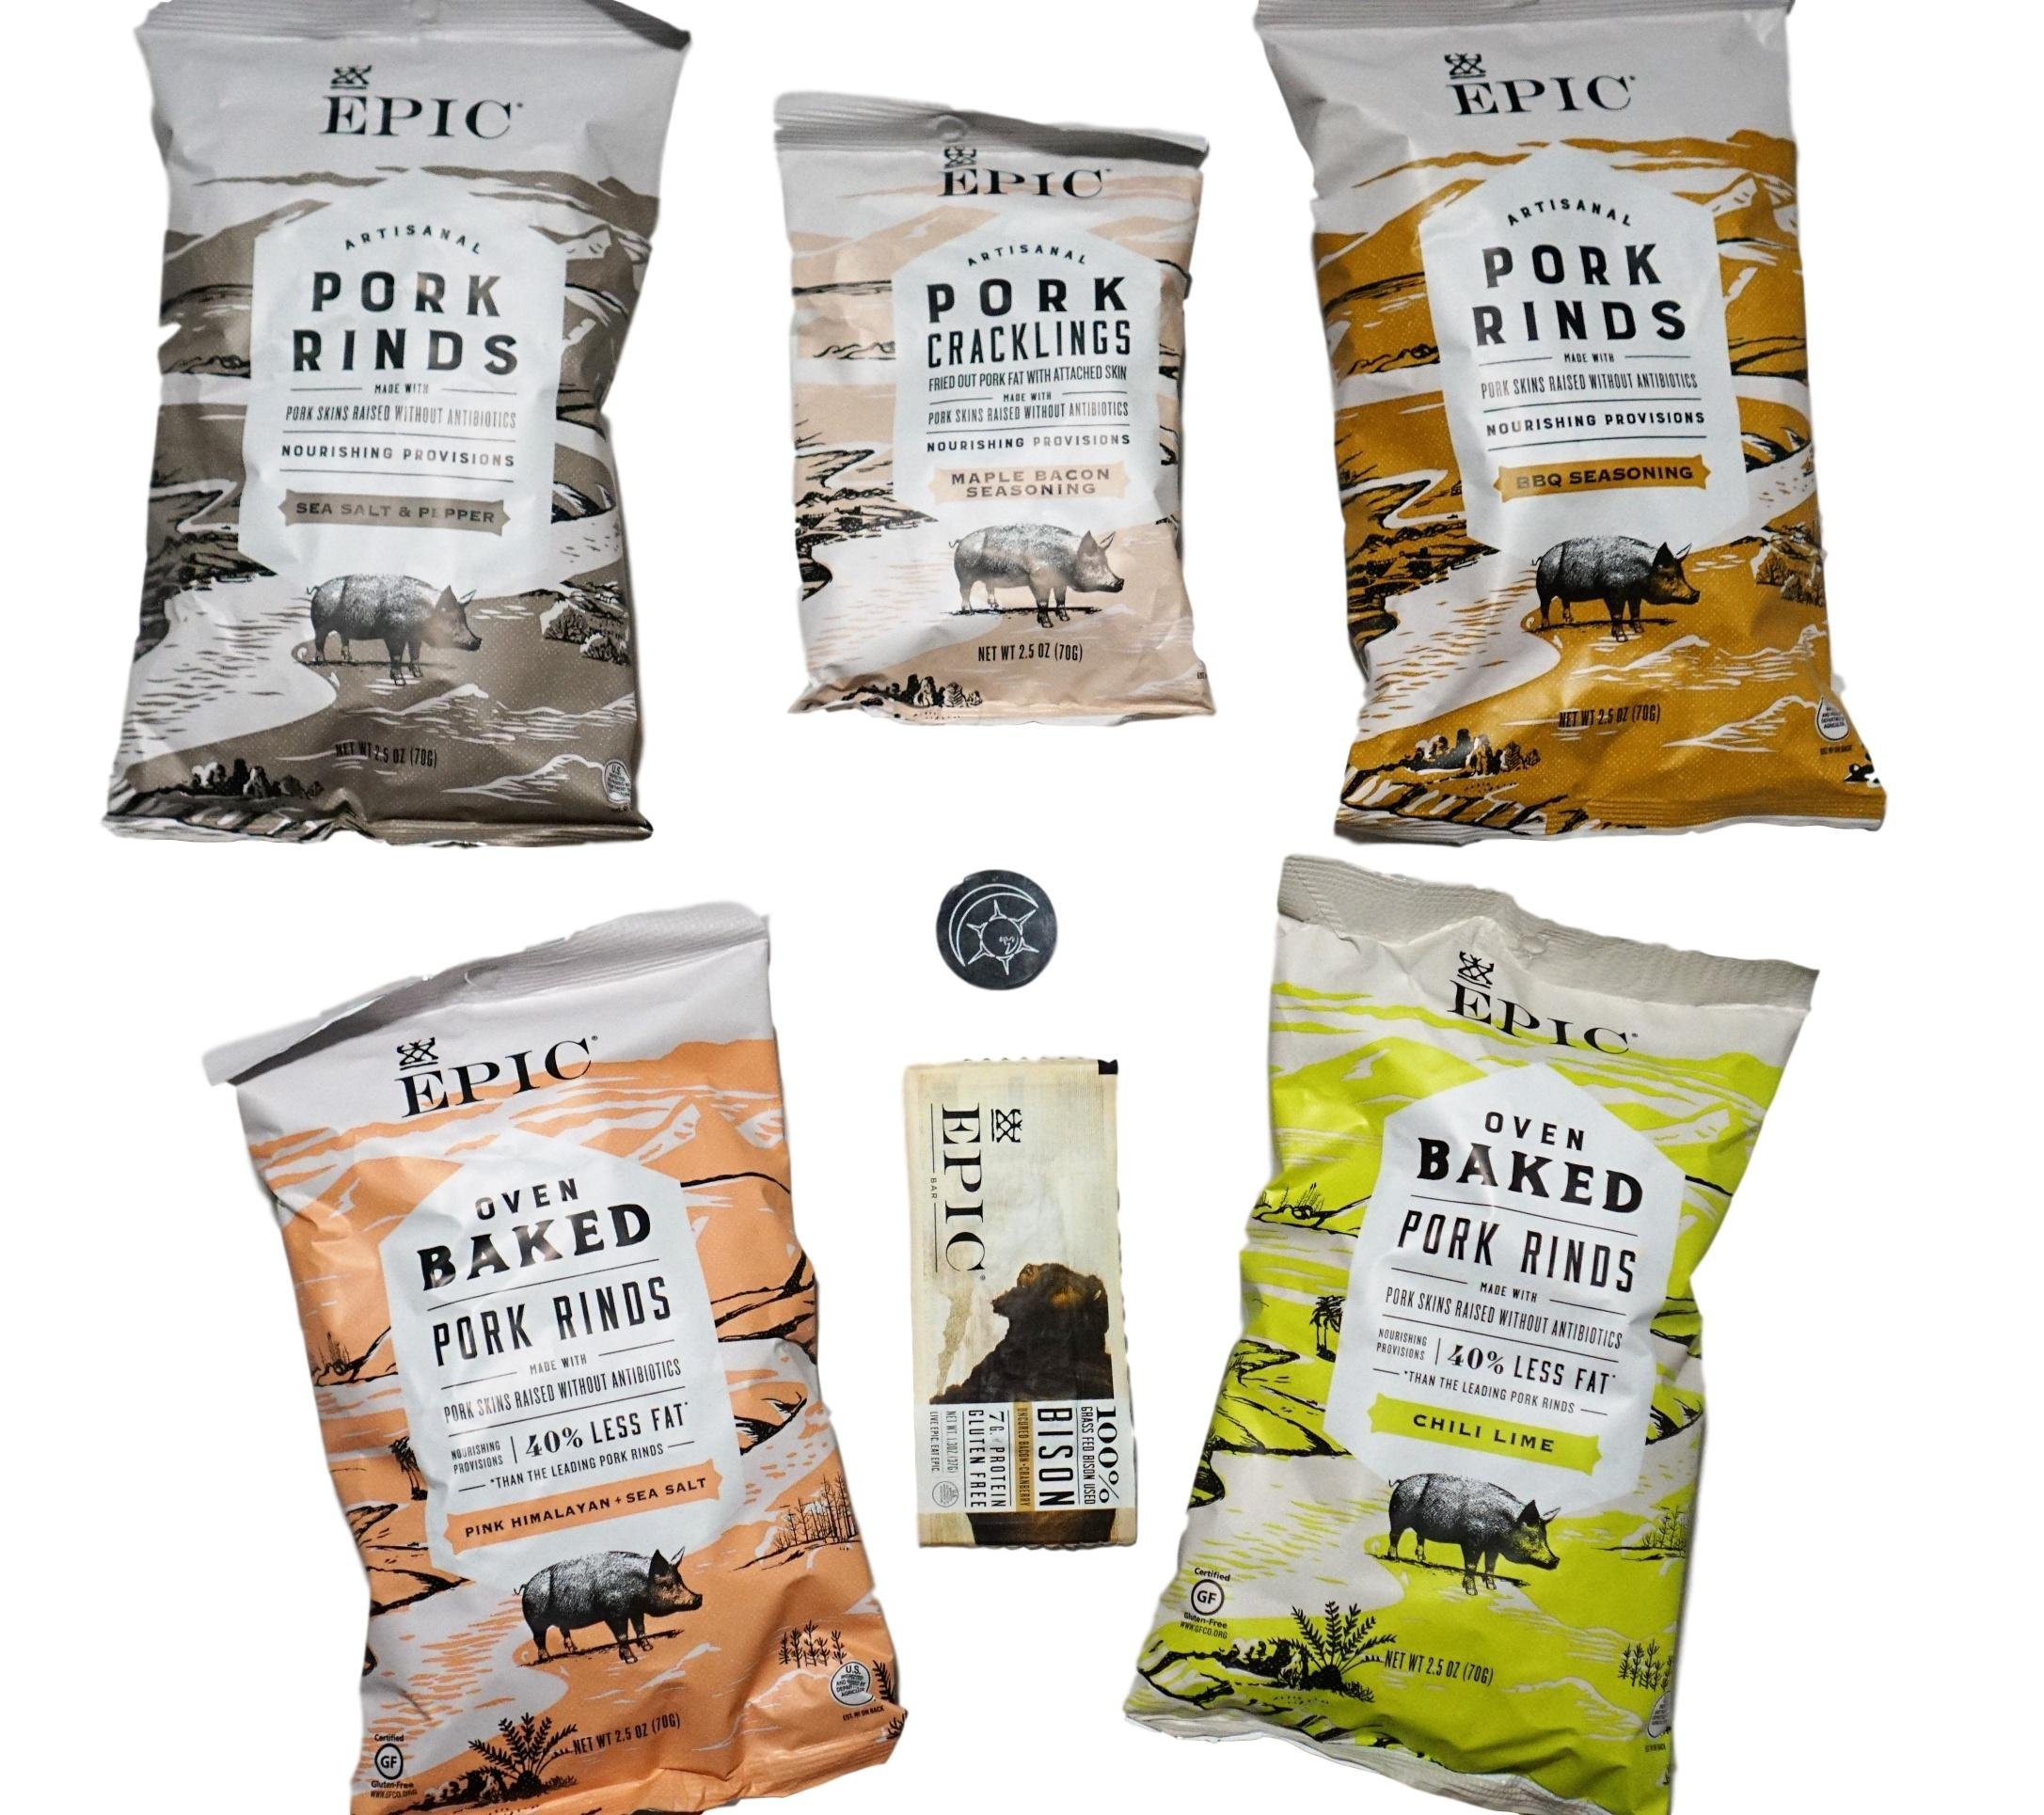 Epic Pork Rinds Variety Pack Plus Bonus Epic Bison Bar and Unique Fridge Magnet by Epic Provisions (Image #1)